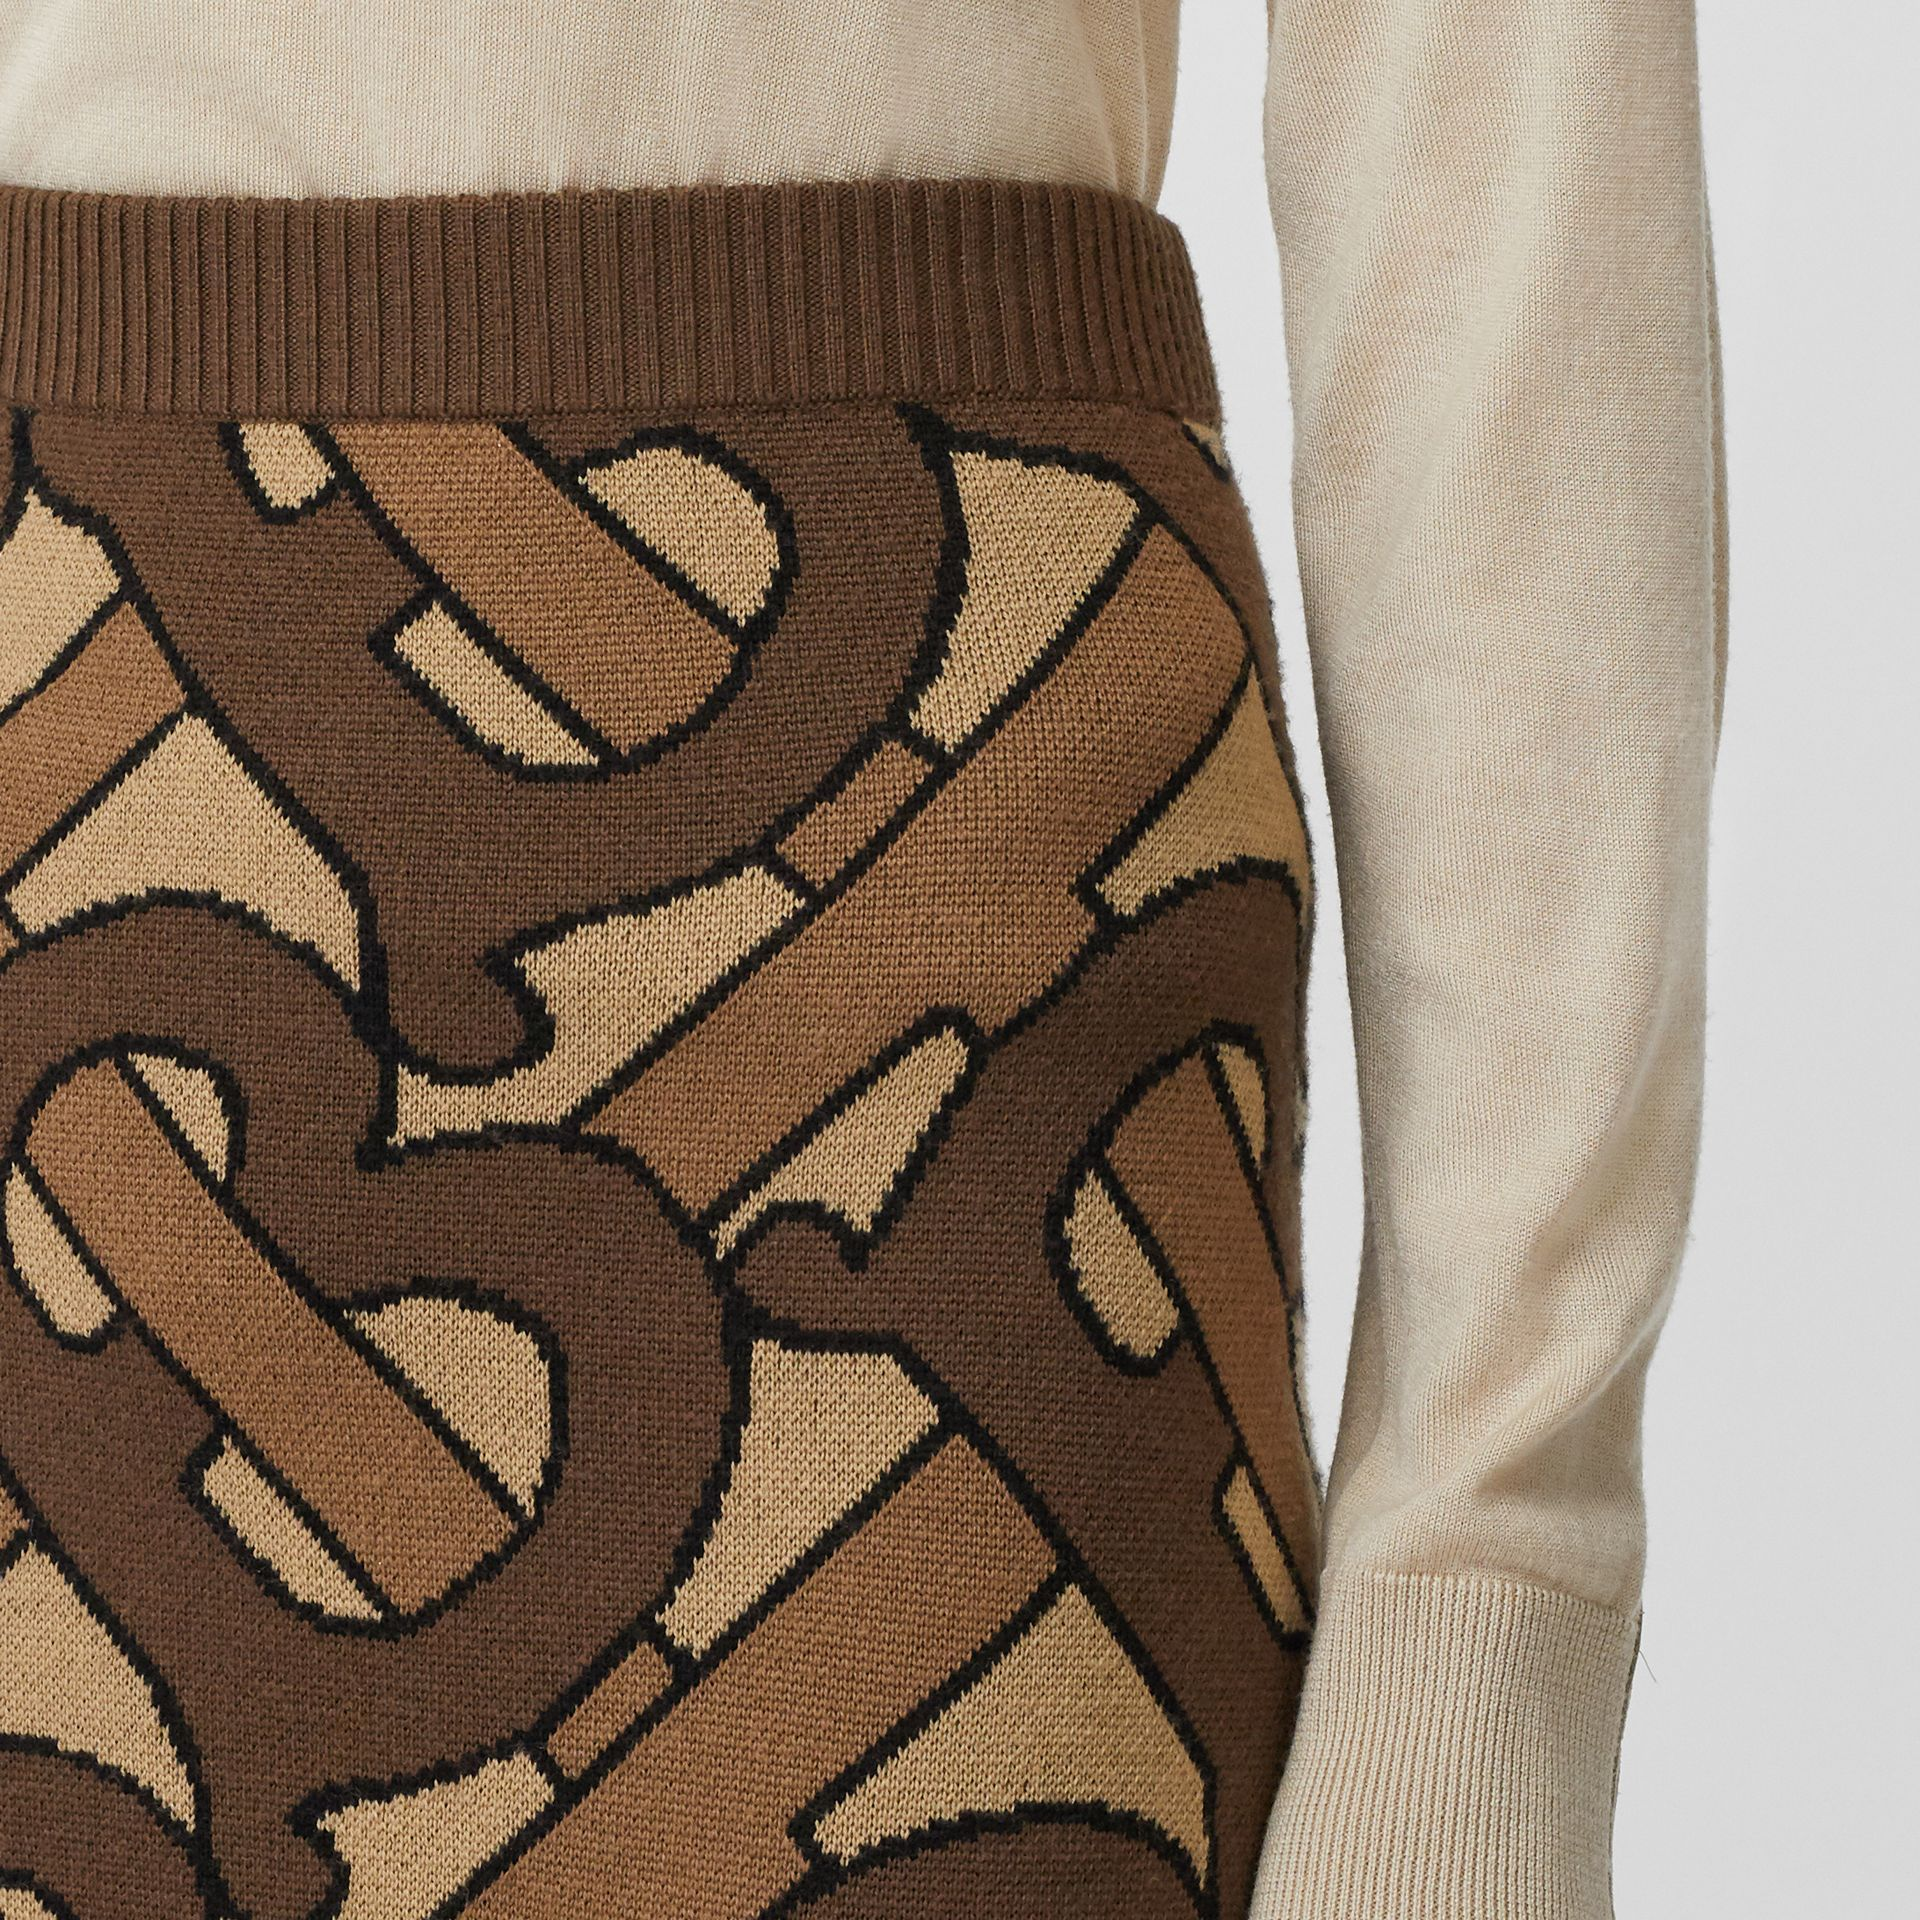 Monogram Intarsia Wool Pencil Skirt in Bridle Brown - Women | Burberry - gallery image 1